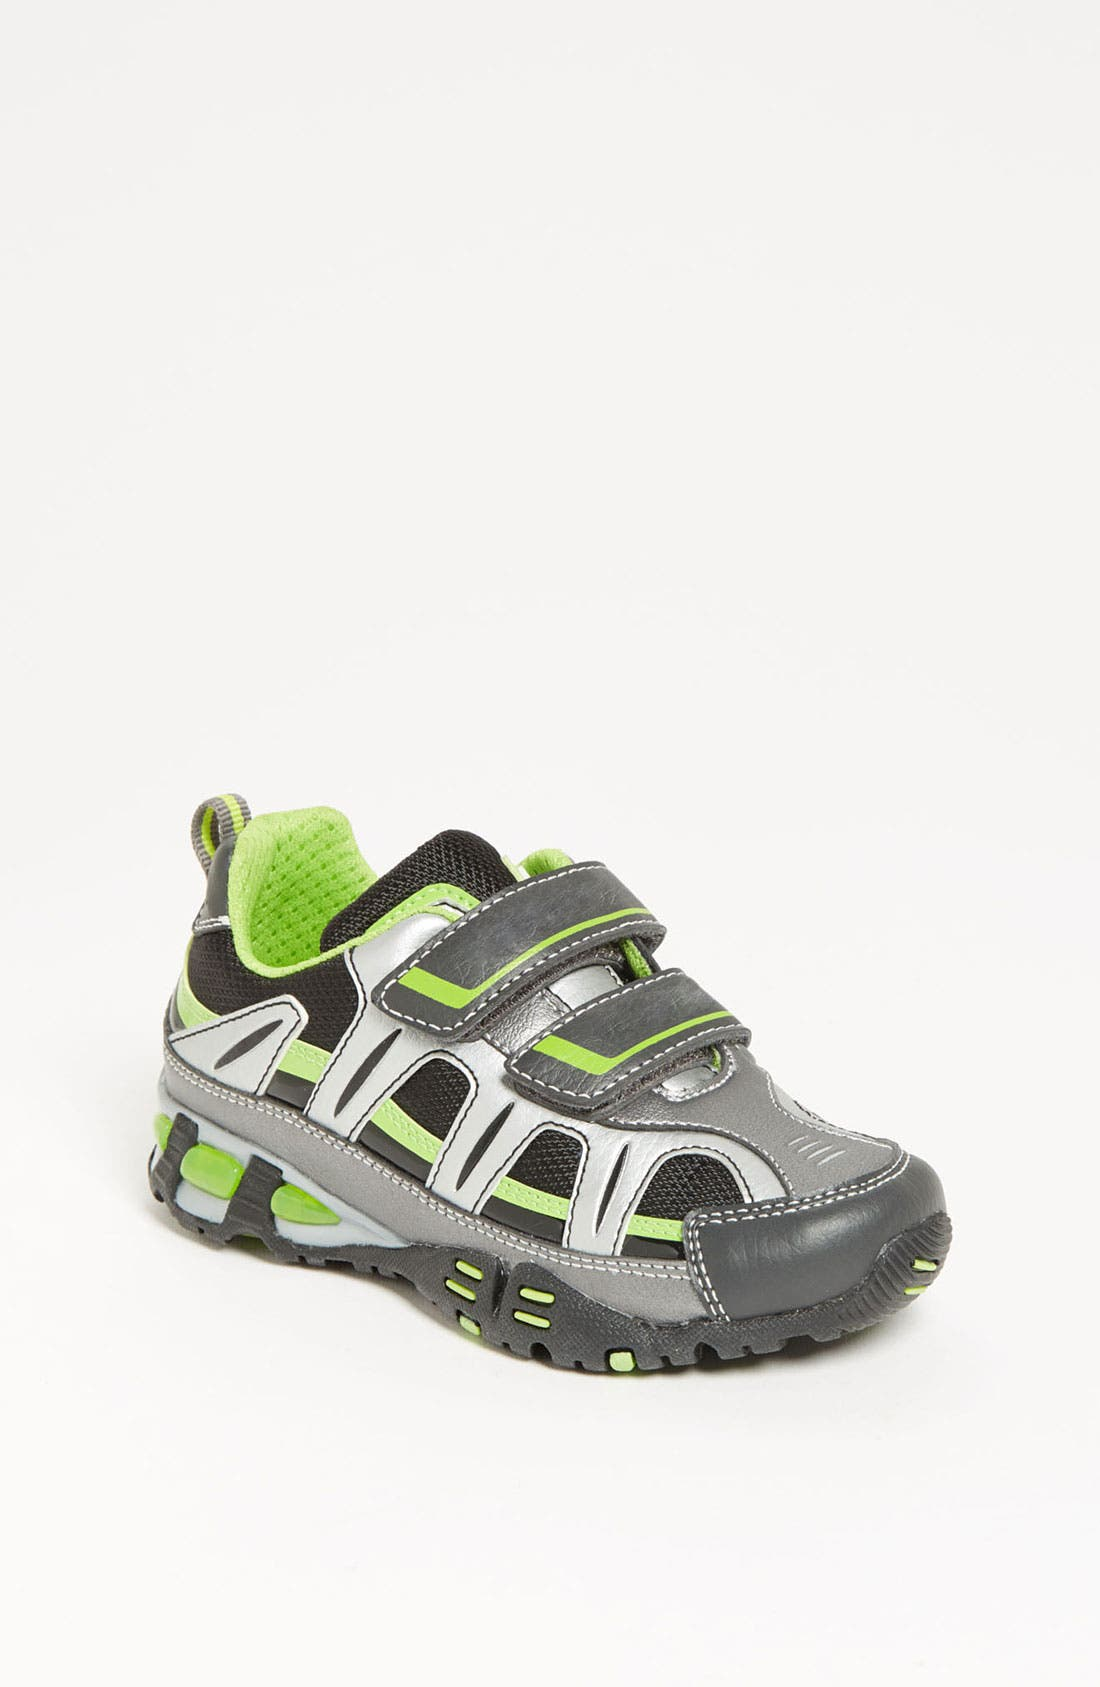 Alternate Image 1 Selected - Geox 'Light Eclipse 14' Light-Up Sneaker (Toddler, Little Kid & Big Kid)